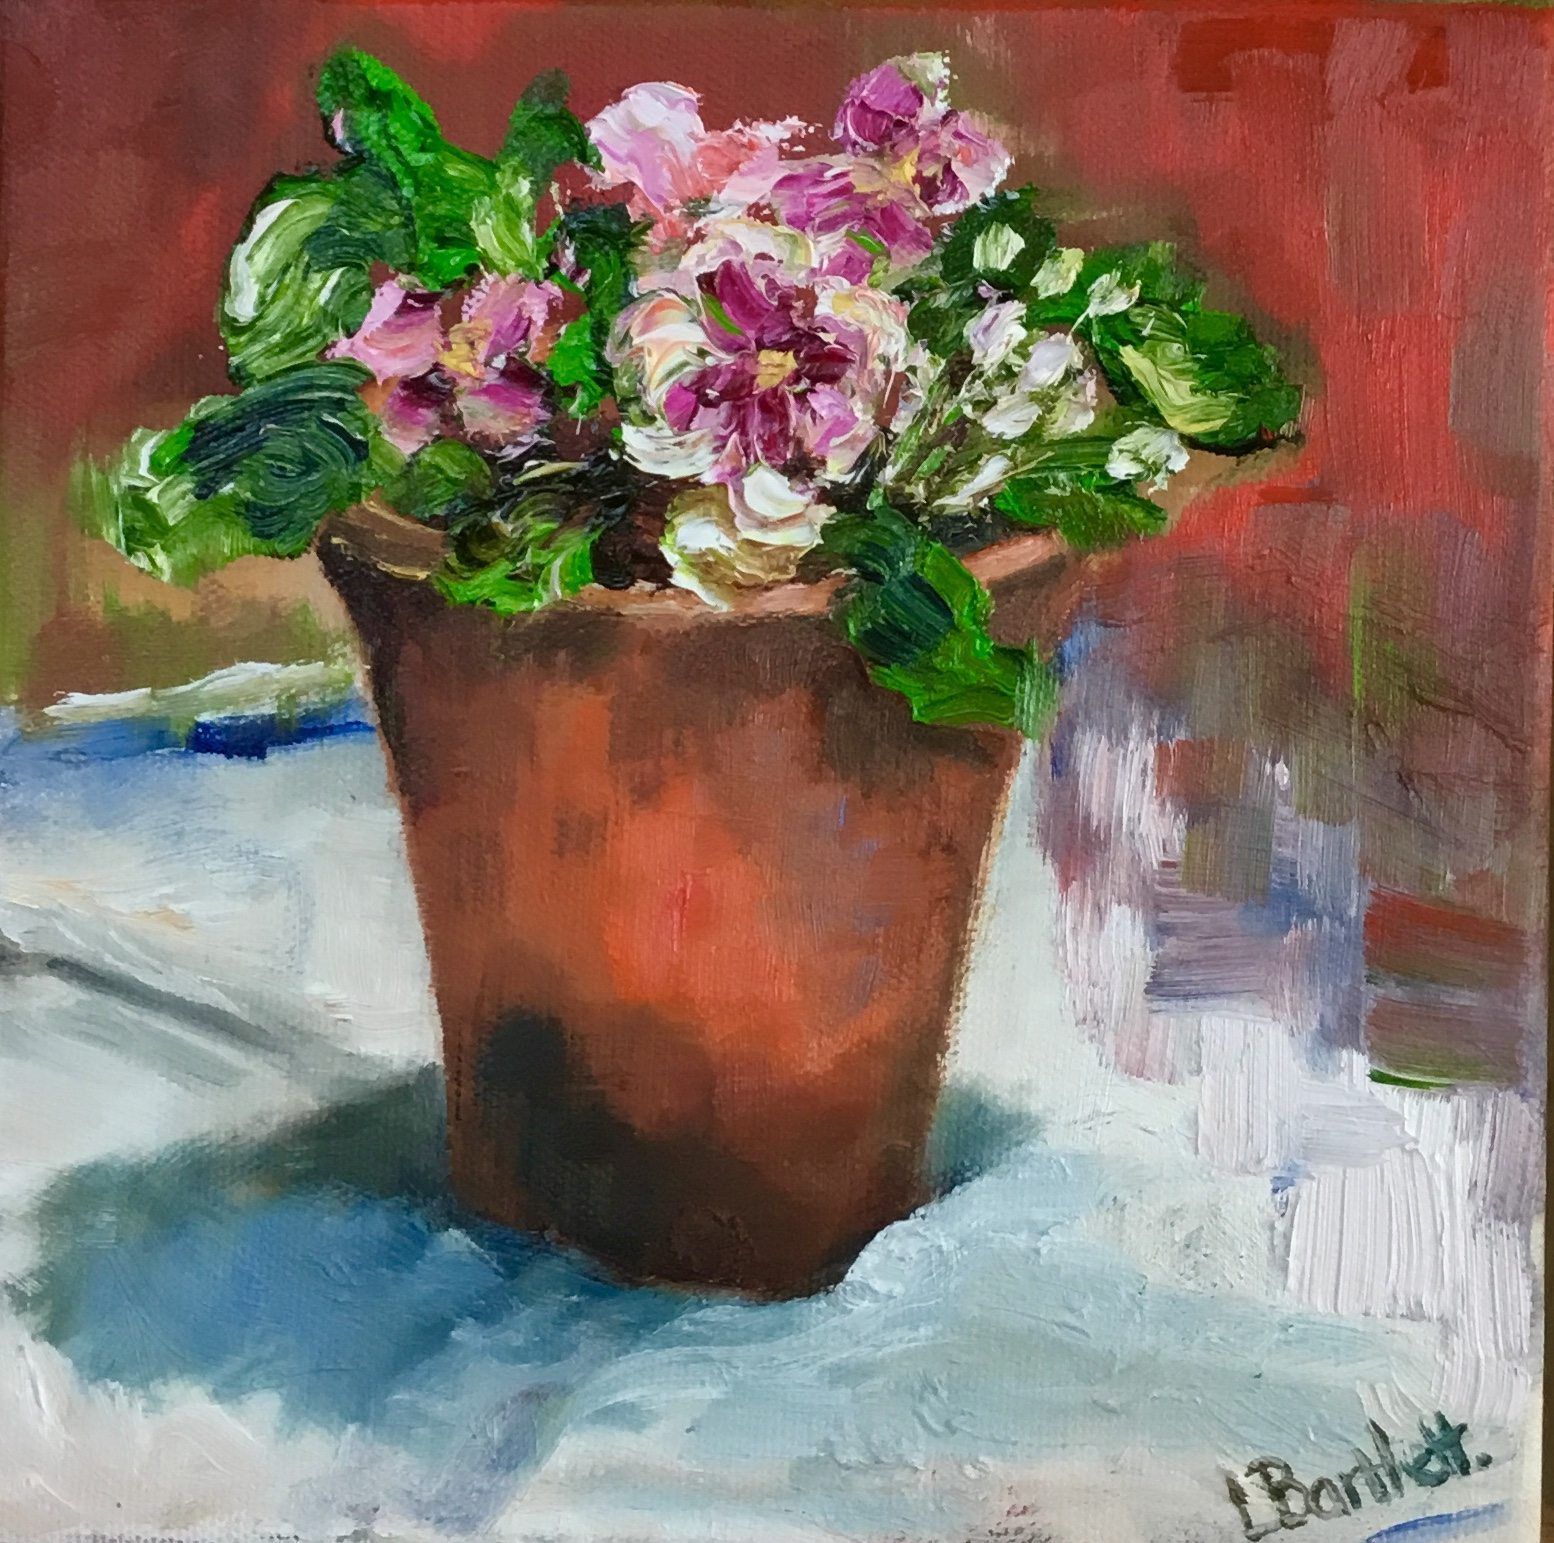 """Pink Primroses"" Oil on deep canvas 20cm x 20cm £150.00. Available at The Frame Gallery in Odiham."